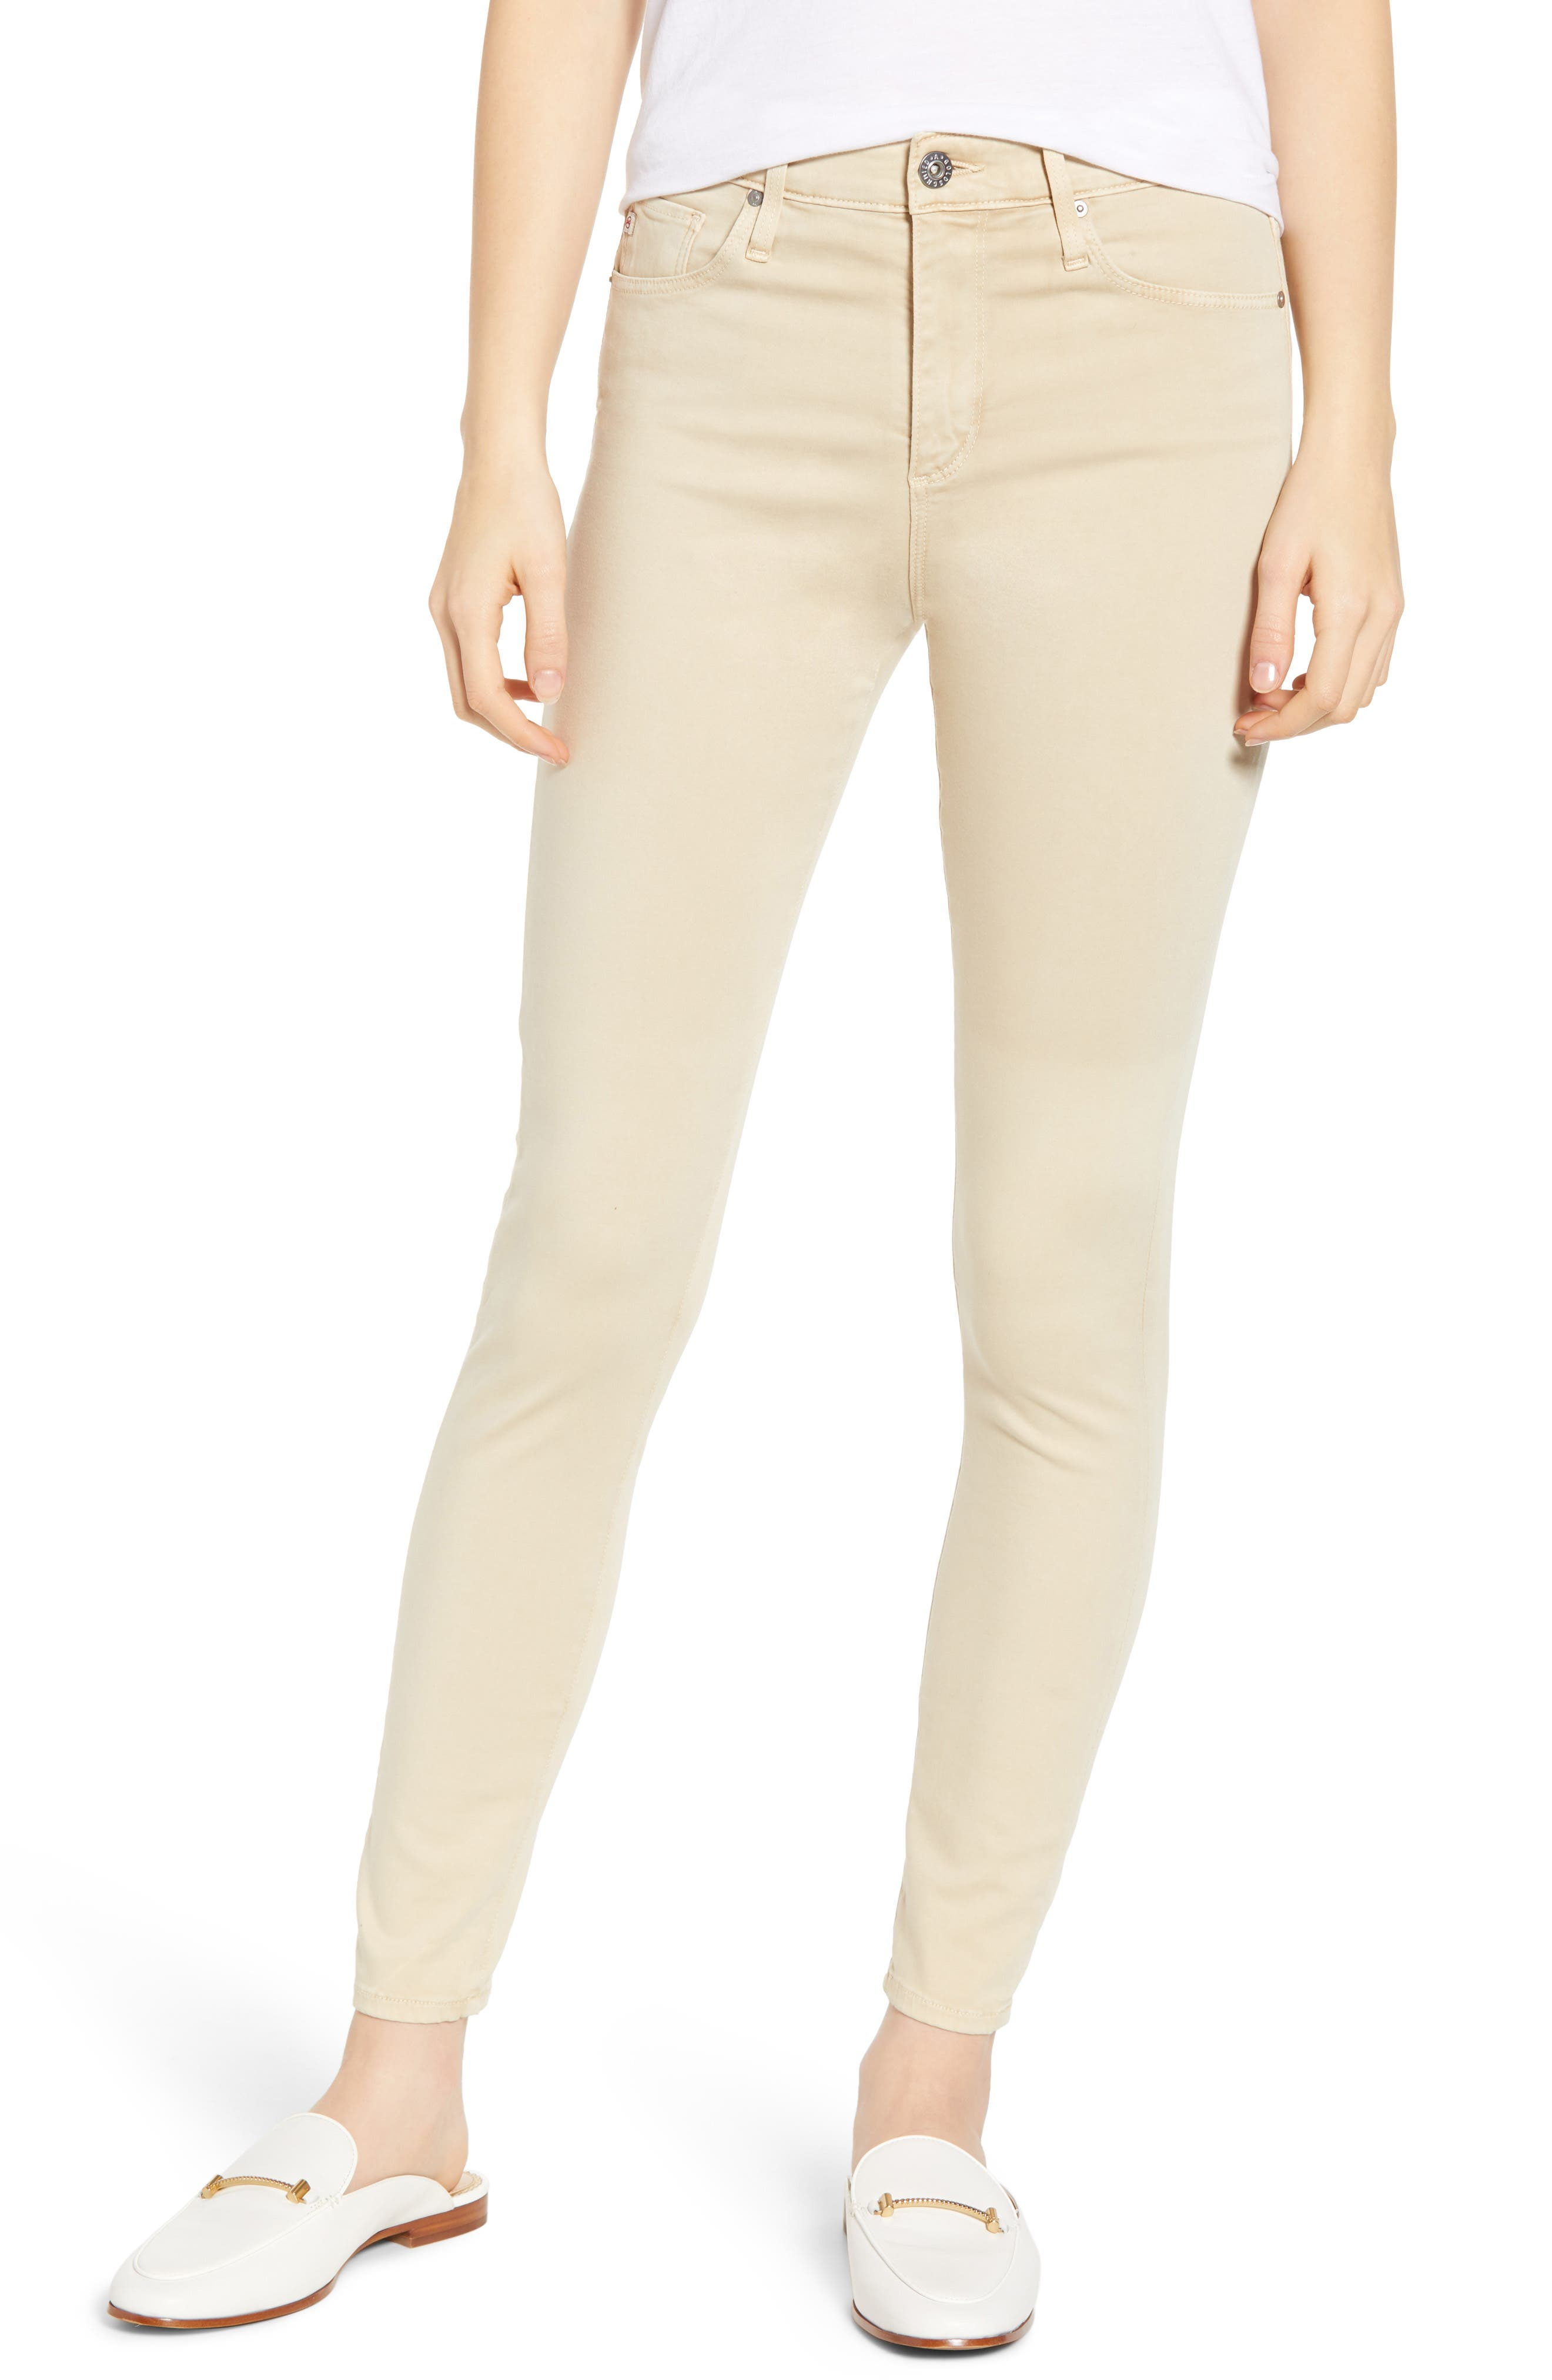 Farrah High Waist Ankle Skinny Jeans,                             Main thumbnail 1, color,                             SULFUR FRESH SAND